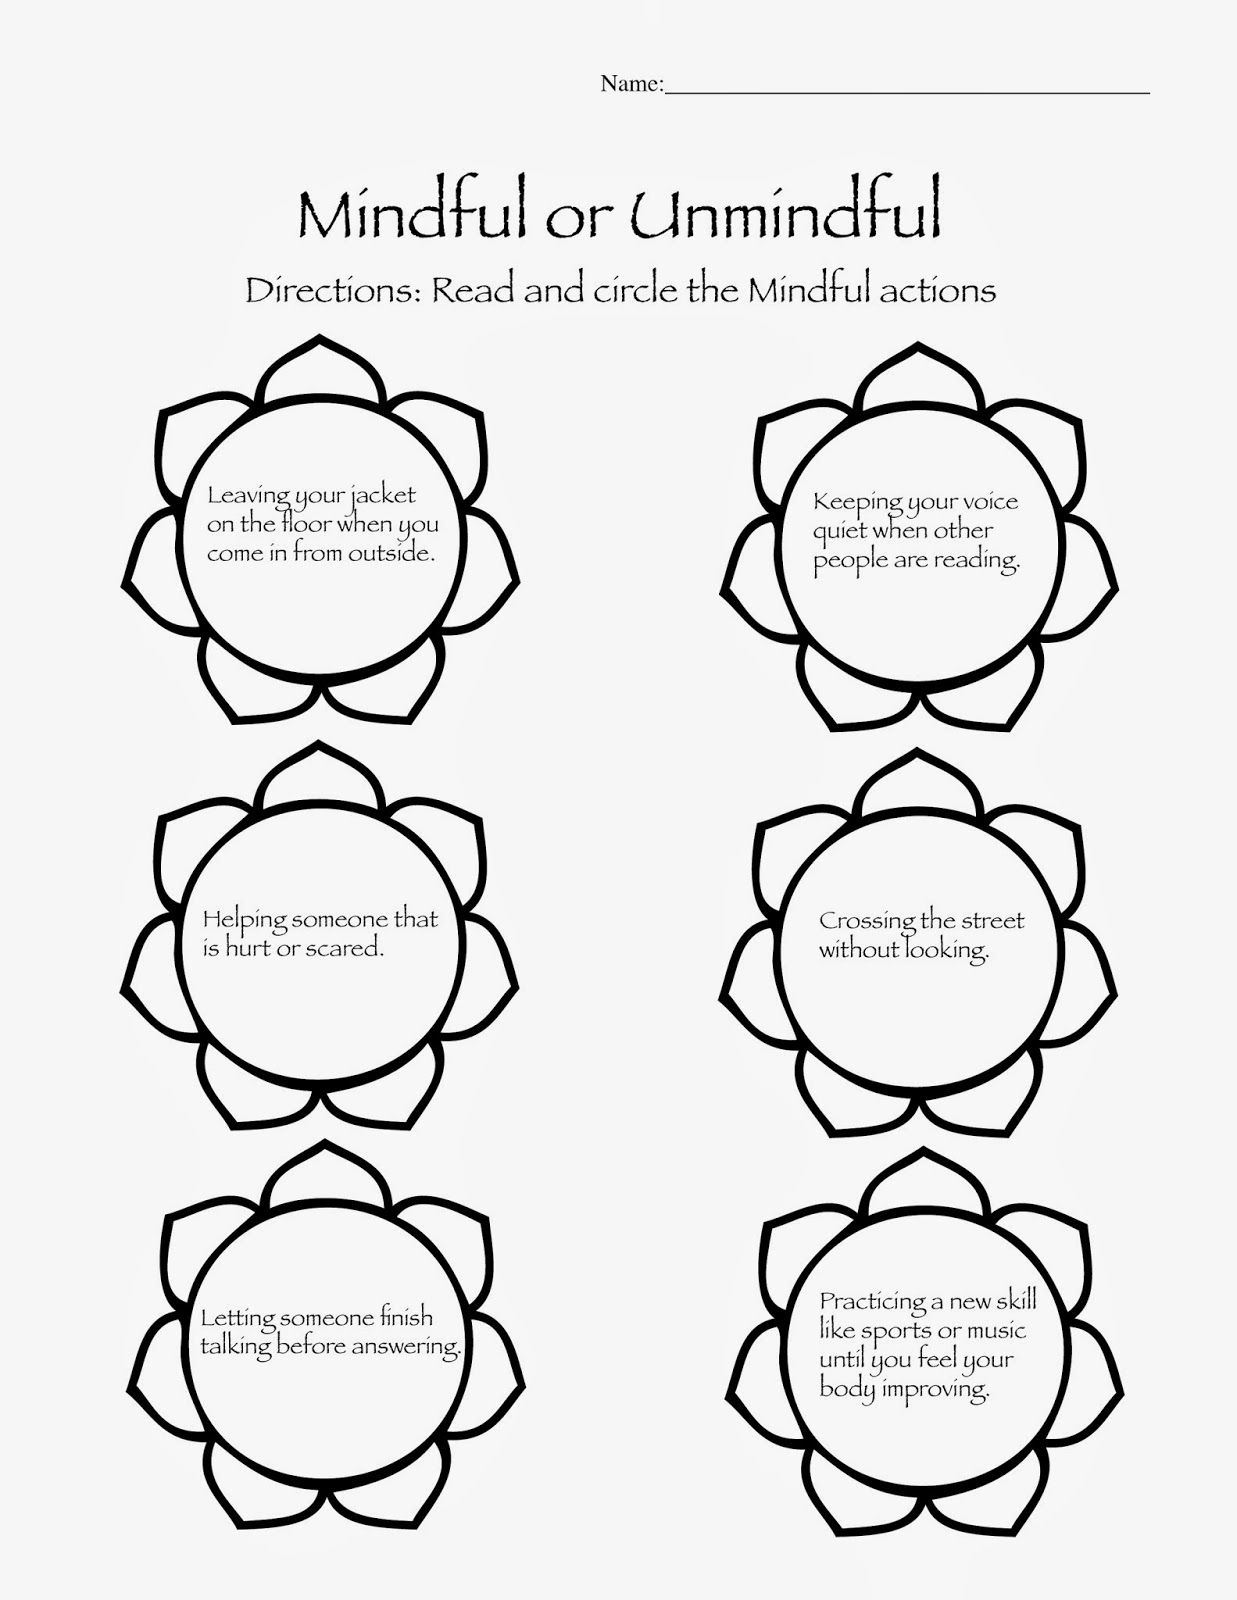 Download I Am Sharing Another Free Worksheet For Teaching Mindfulness To Children This One Is